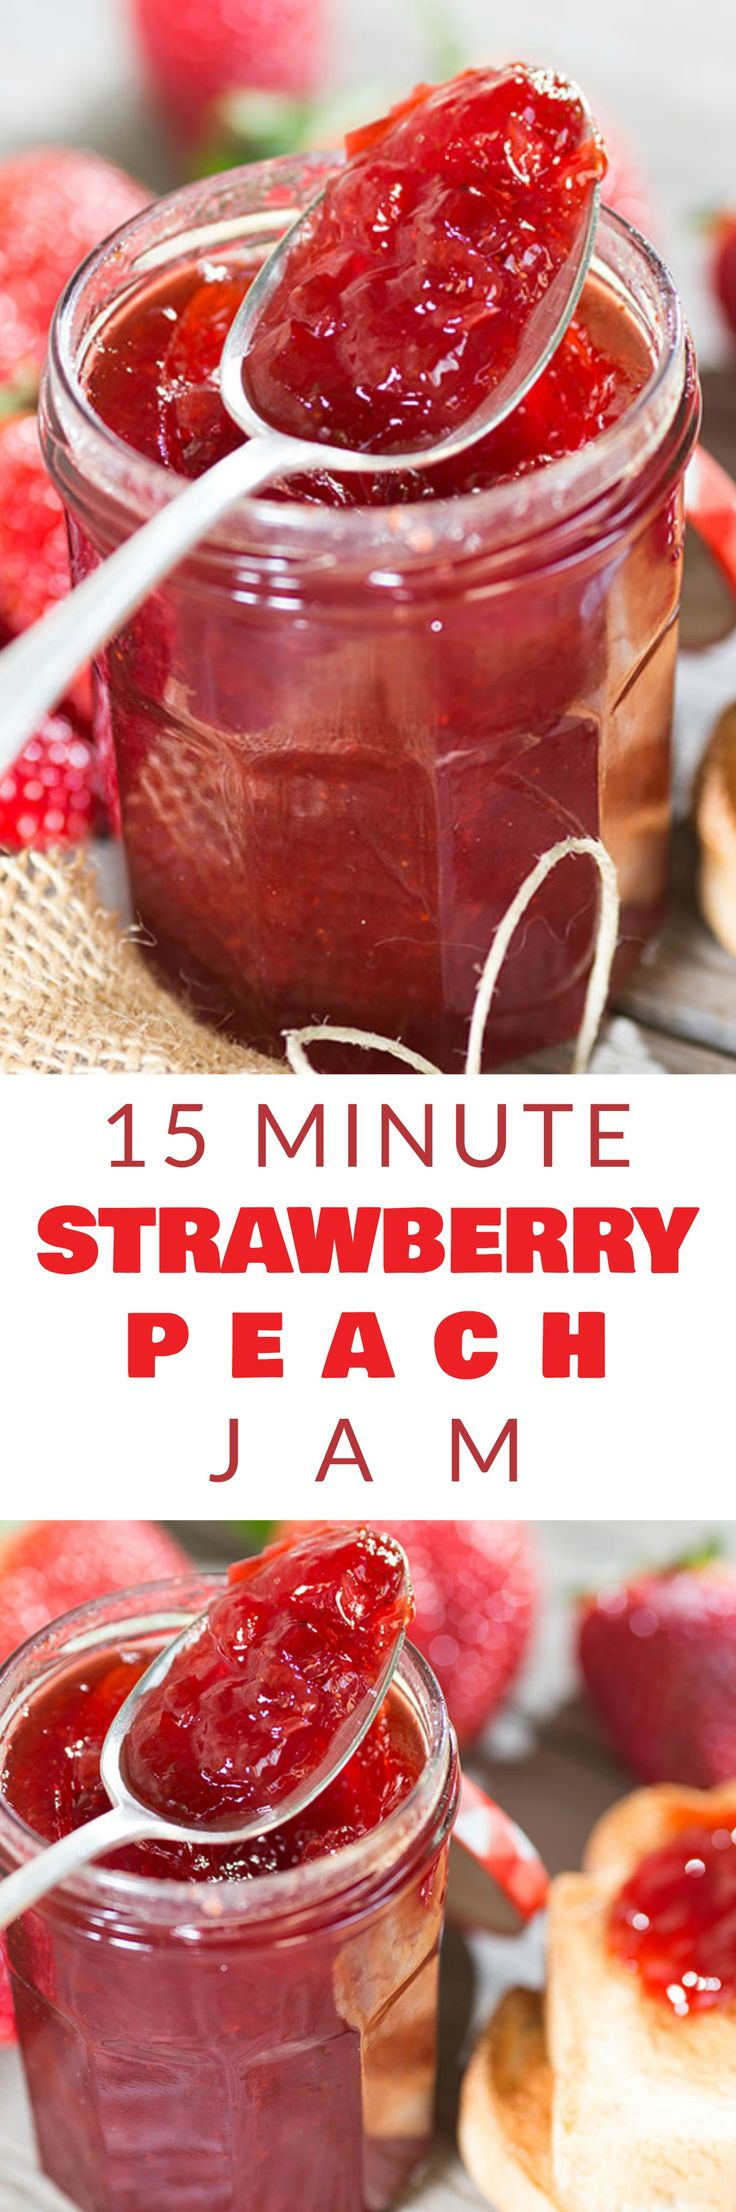 Homemade 15 MINUTE Strawberry Peach Jam recipe that makes a small batch 8 oz jar without pectin! This healthy, easy recipe is a low sugar jam made with honey that makes a perfect jam for toast, dessert and more. I love canning this recipe too!